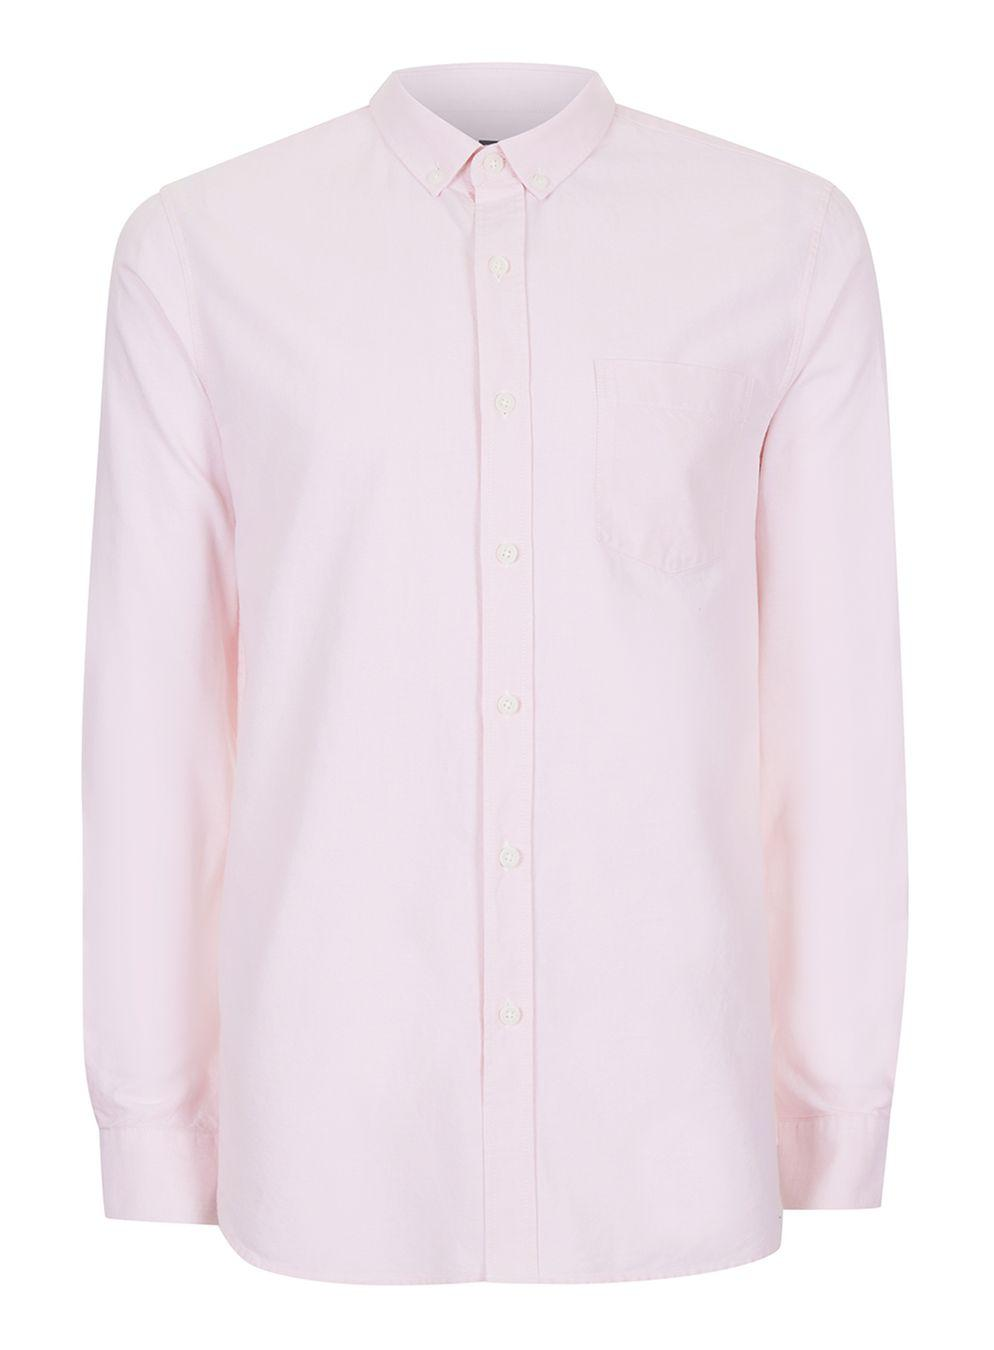 Topman pink button down oxford shirt in pink for men lyst for Pink oxford shirt men